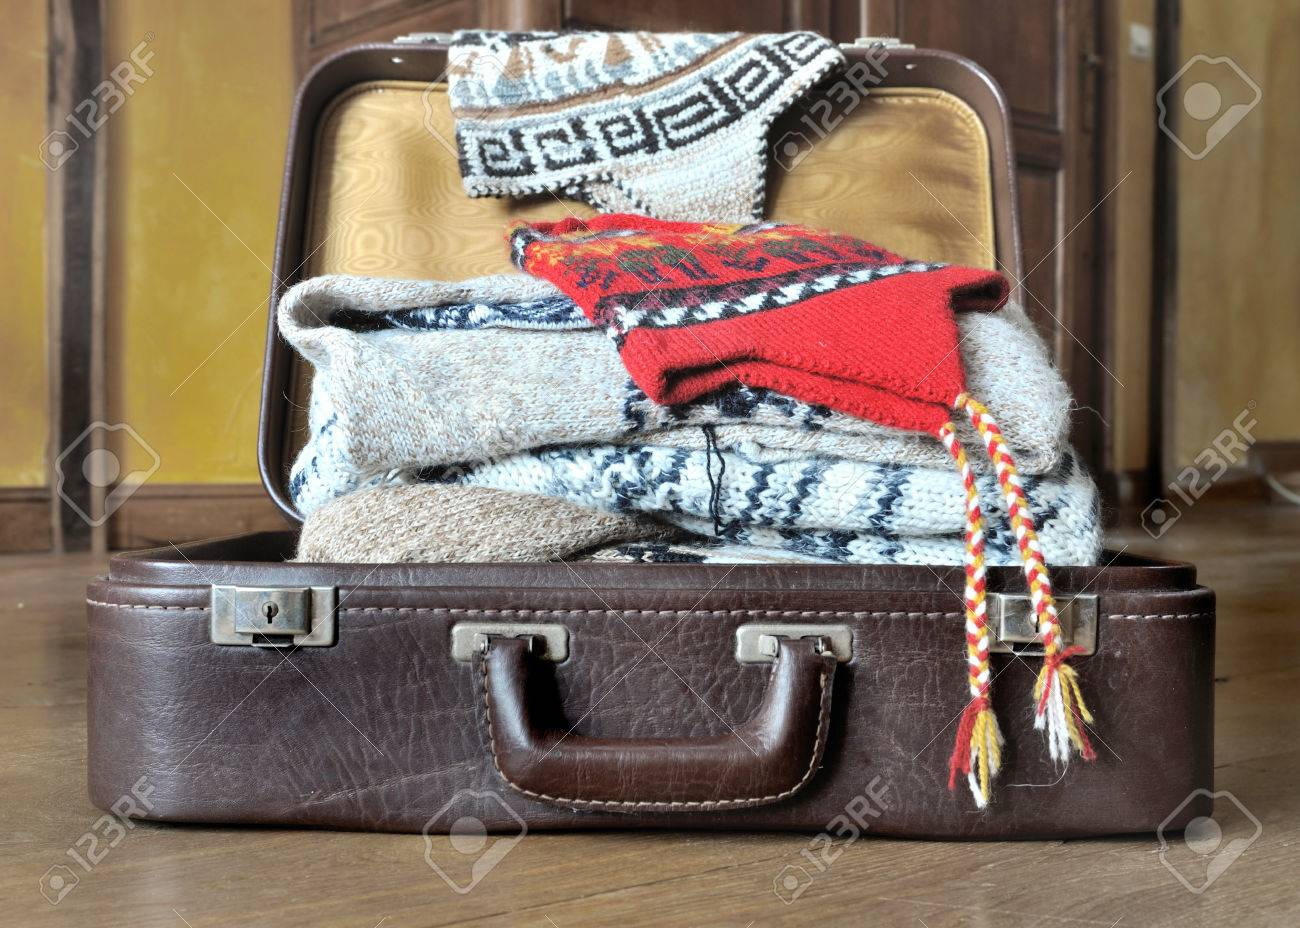 dc113653ecc open suitcase full of warm clothes on the floor Stock Photo - 51470859